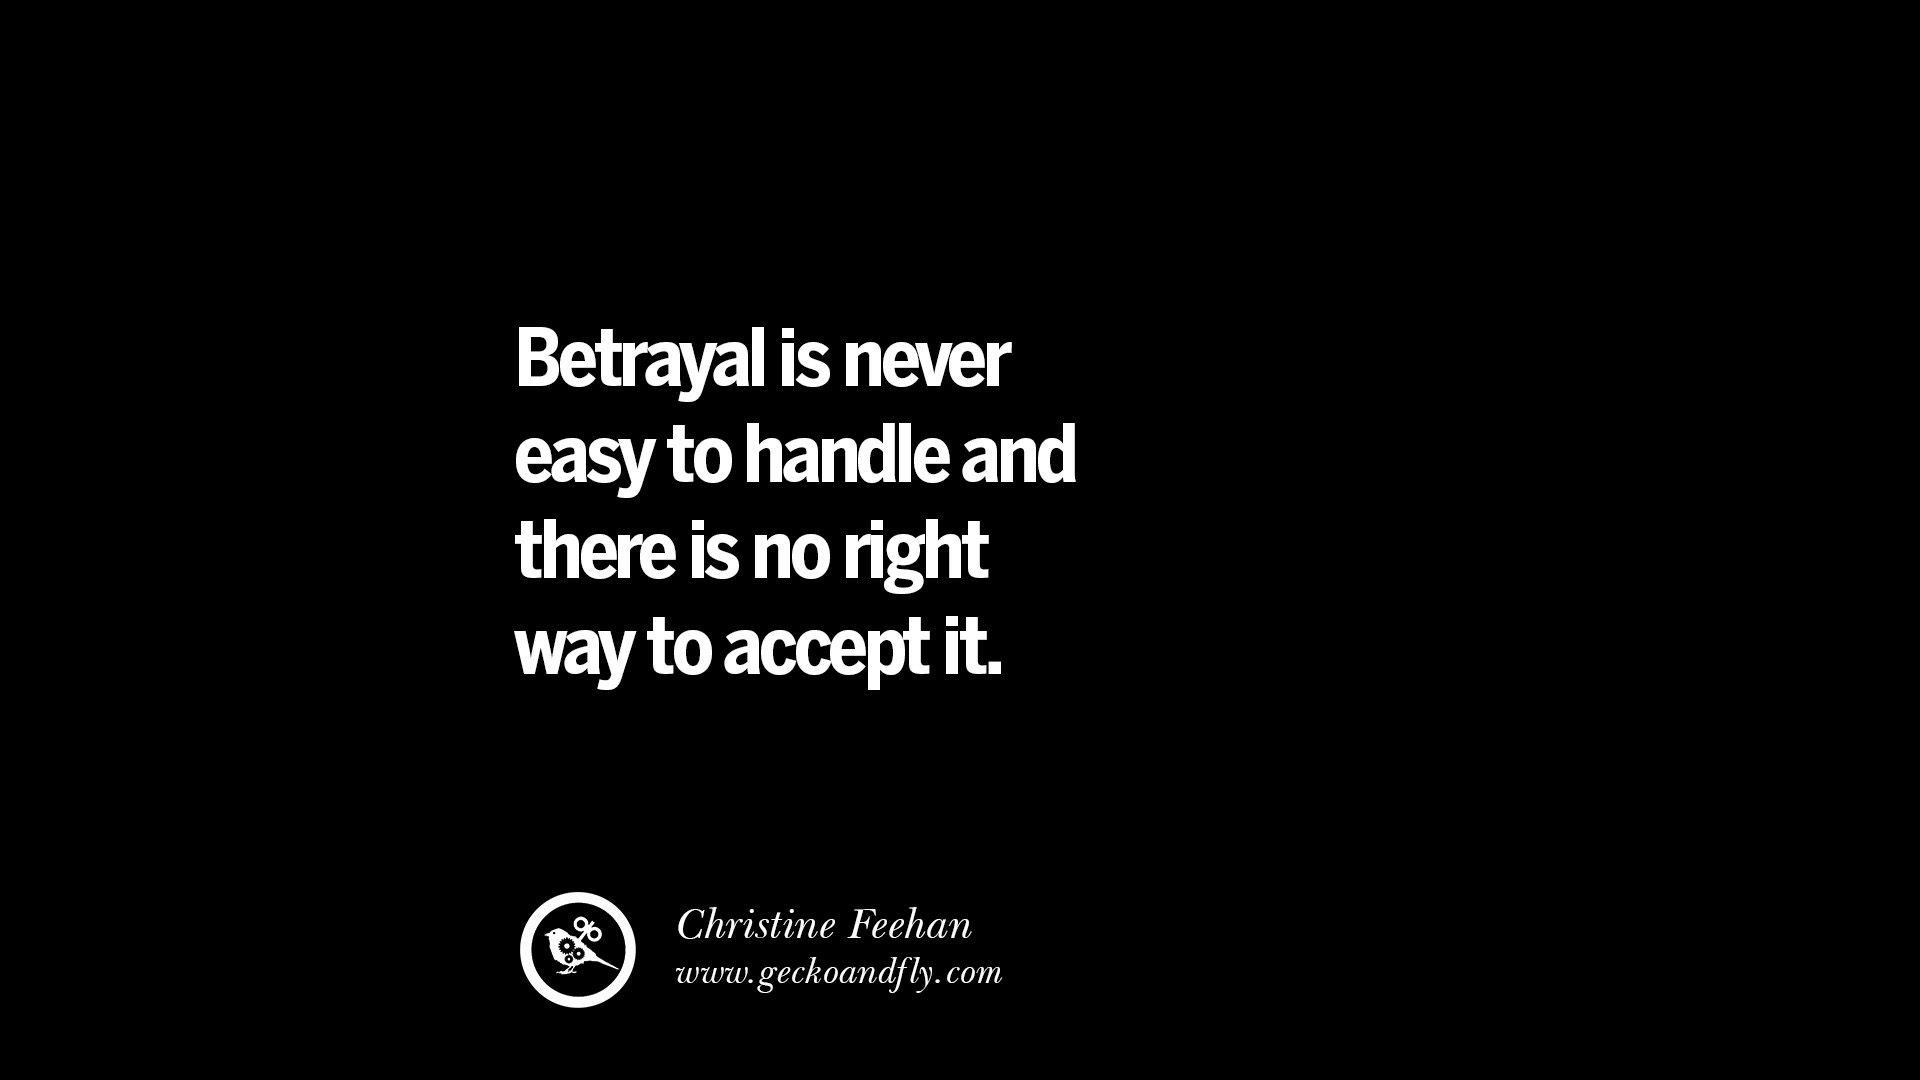 Betrayal In A Relationship: 25 Quotes On Friendship, Trust And Love Betrayal